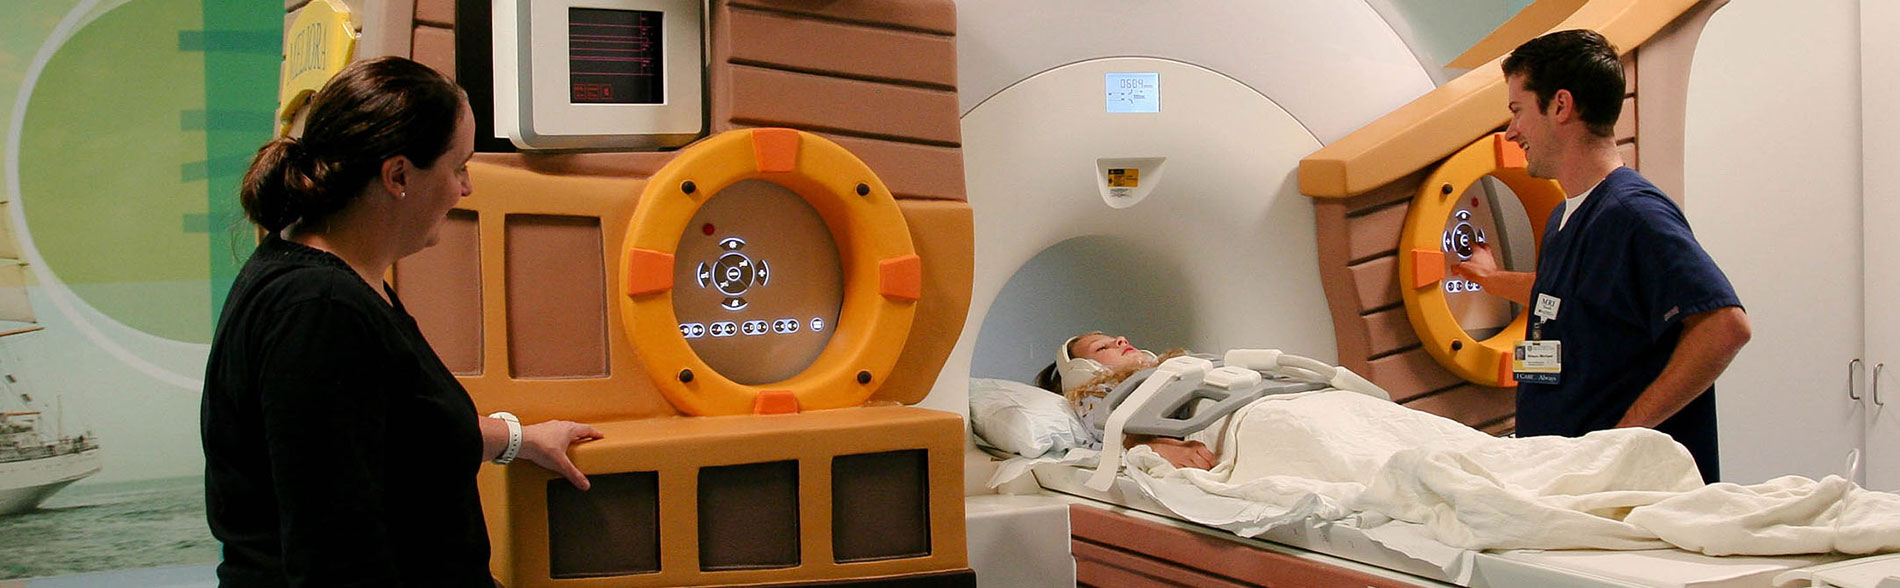 Getting an MRI